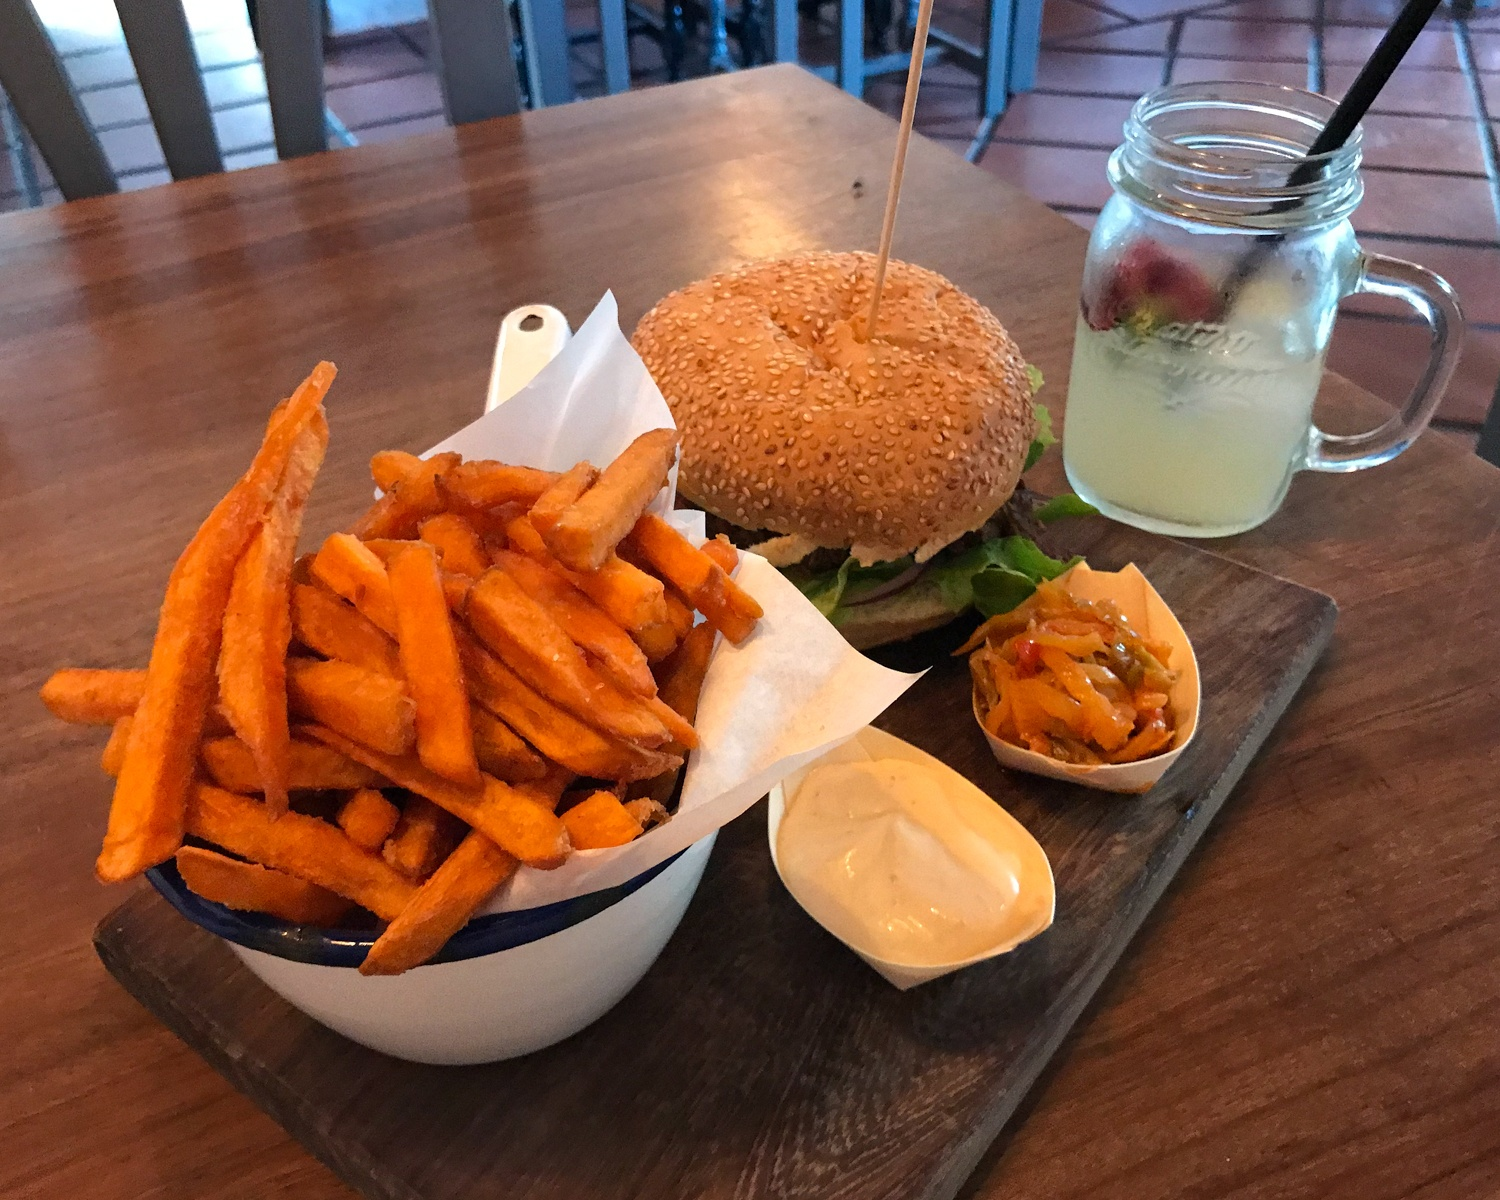 Sweet potatoes and pulled pork at Cantina Teguise in Lanzarote Photo Heatheronhertravels.com